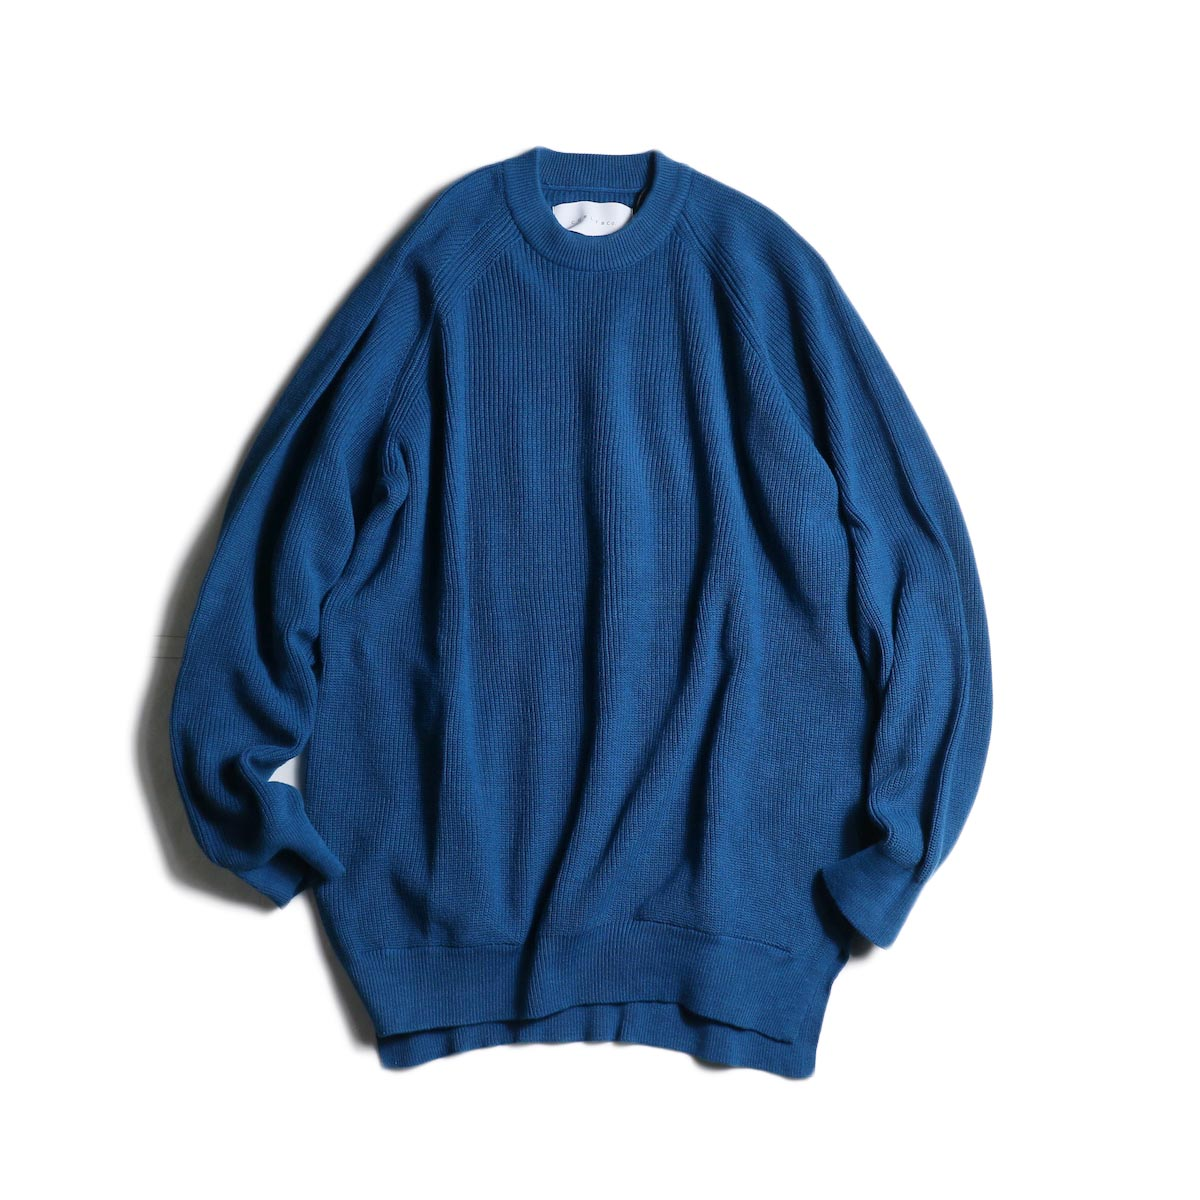 CURLY / ASSEMBLY CREW KNIT (Bondi Blue)